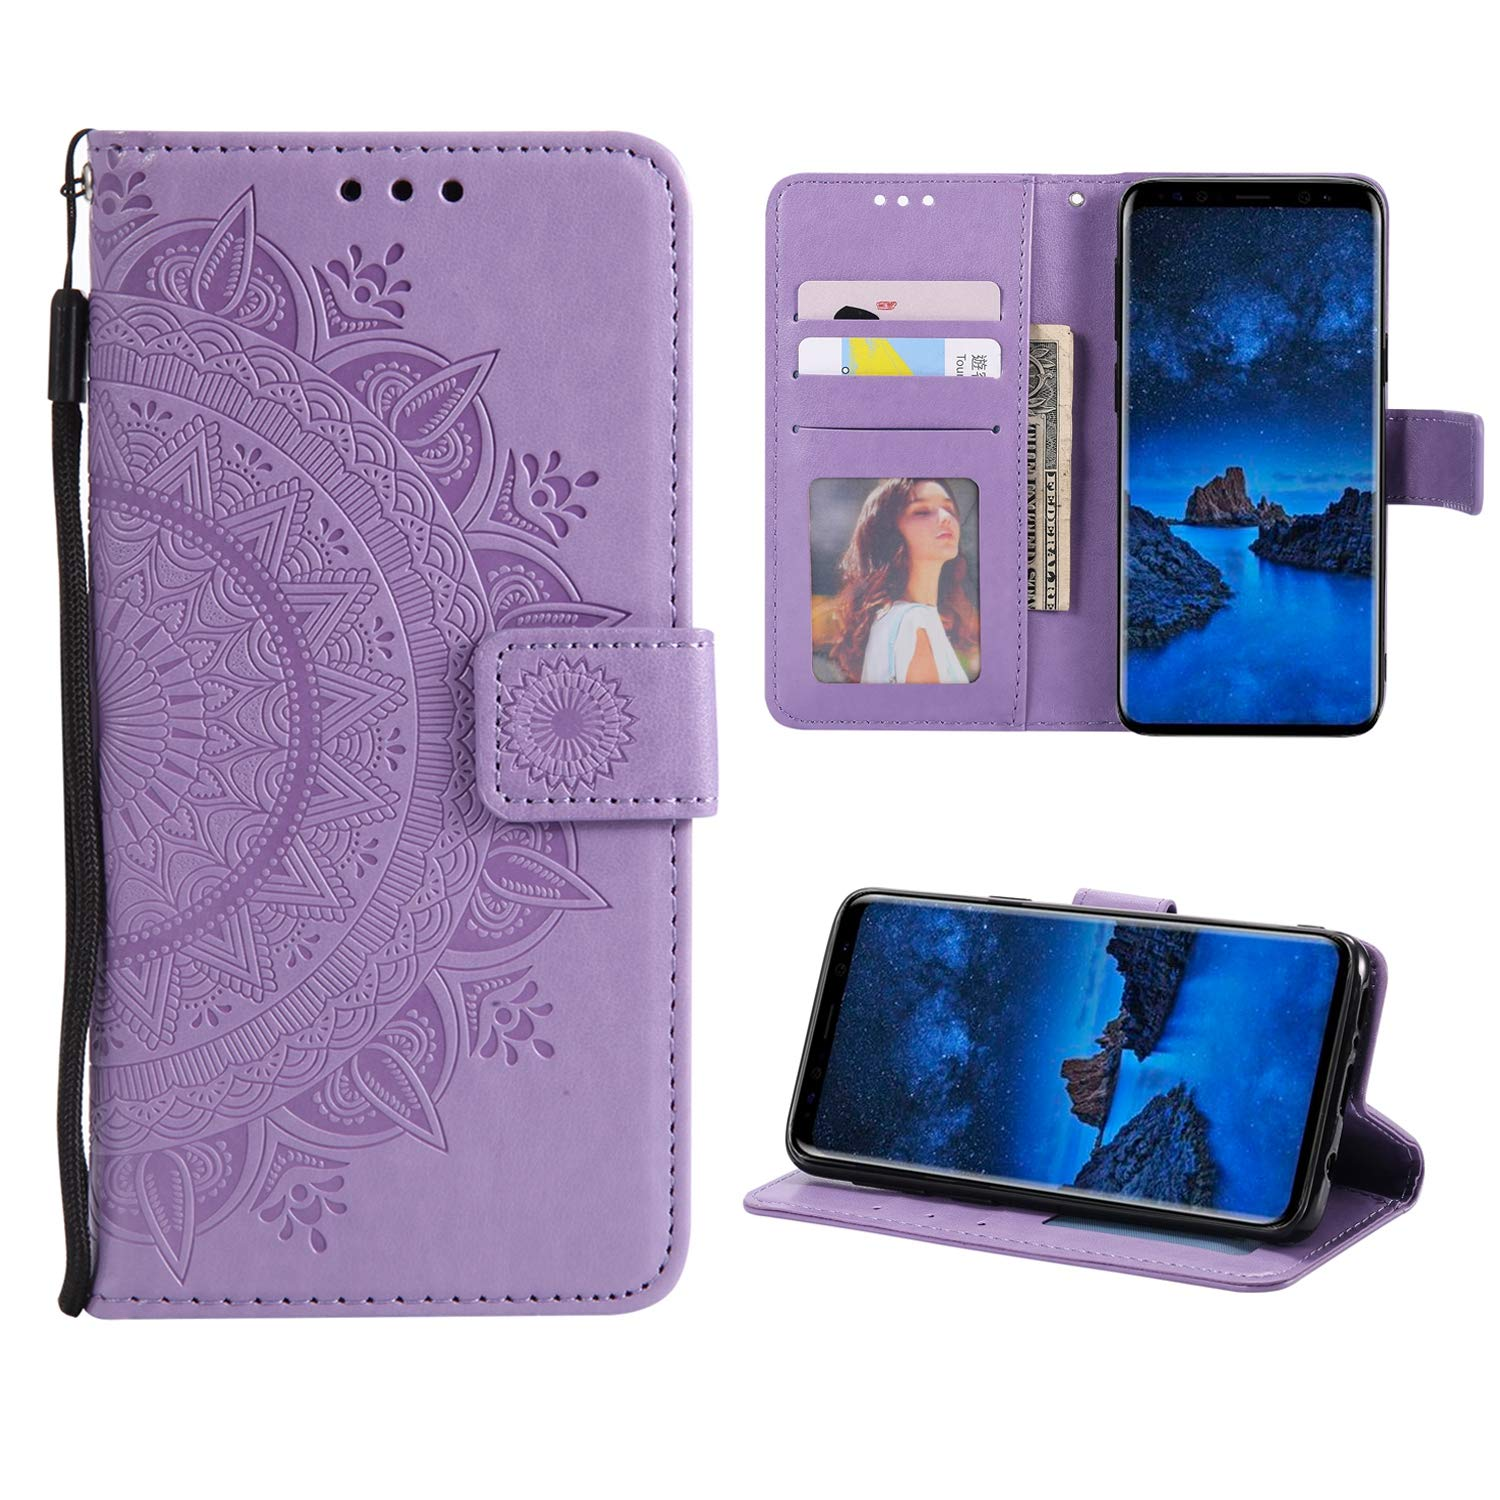 Case for Galaxy S7 Edge PU Leather Flip Wallet Cover, Mistars Tribal Mandala Flower Pattern Embossed Full Body Protection Cove with Card Holder Kickstand Magnetic Closure Shell Inner Soft TPU Silicone Bumper for Samsung Galaxy S7 Edge (5.5 inch) - Grey